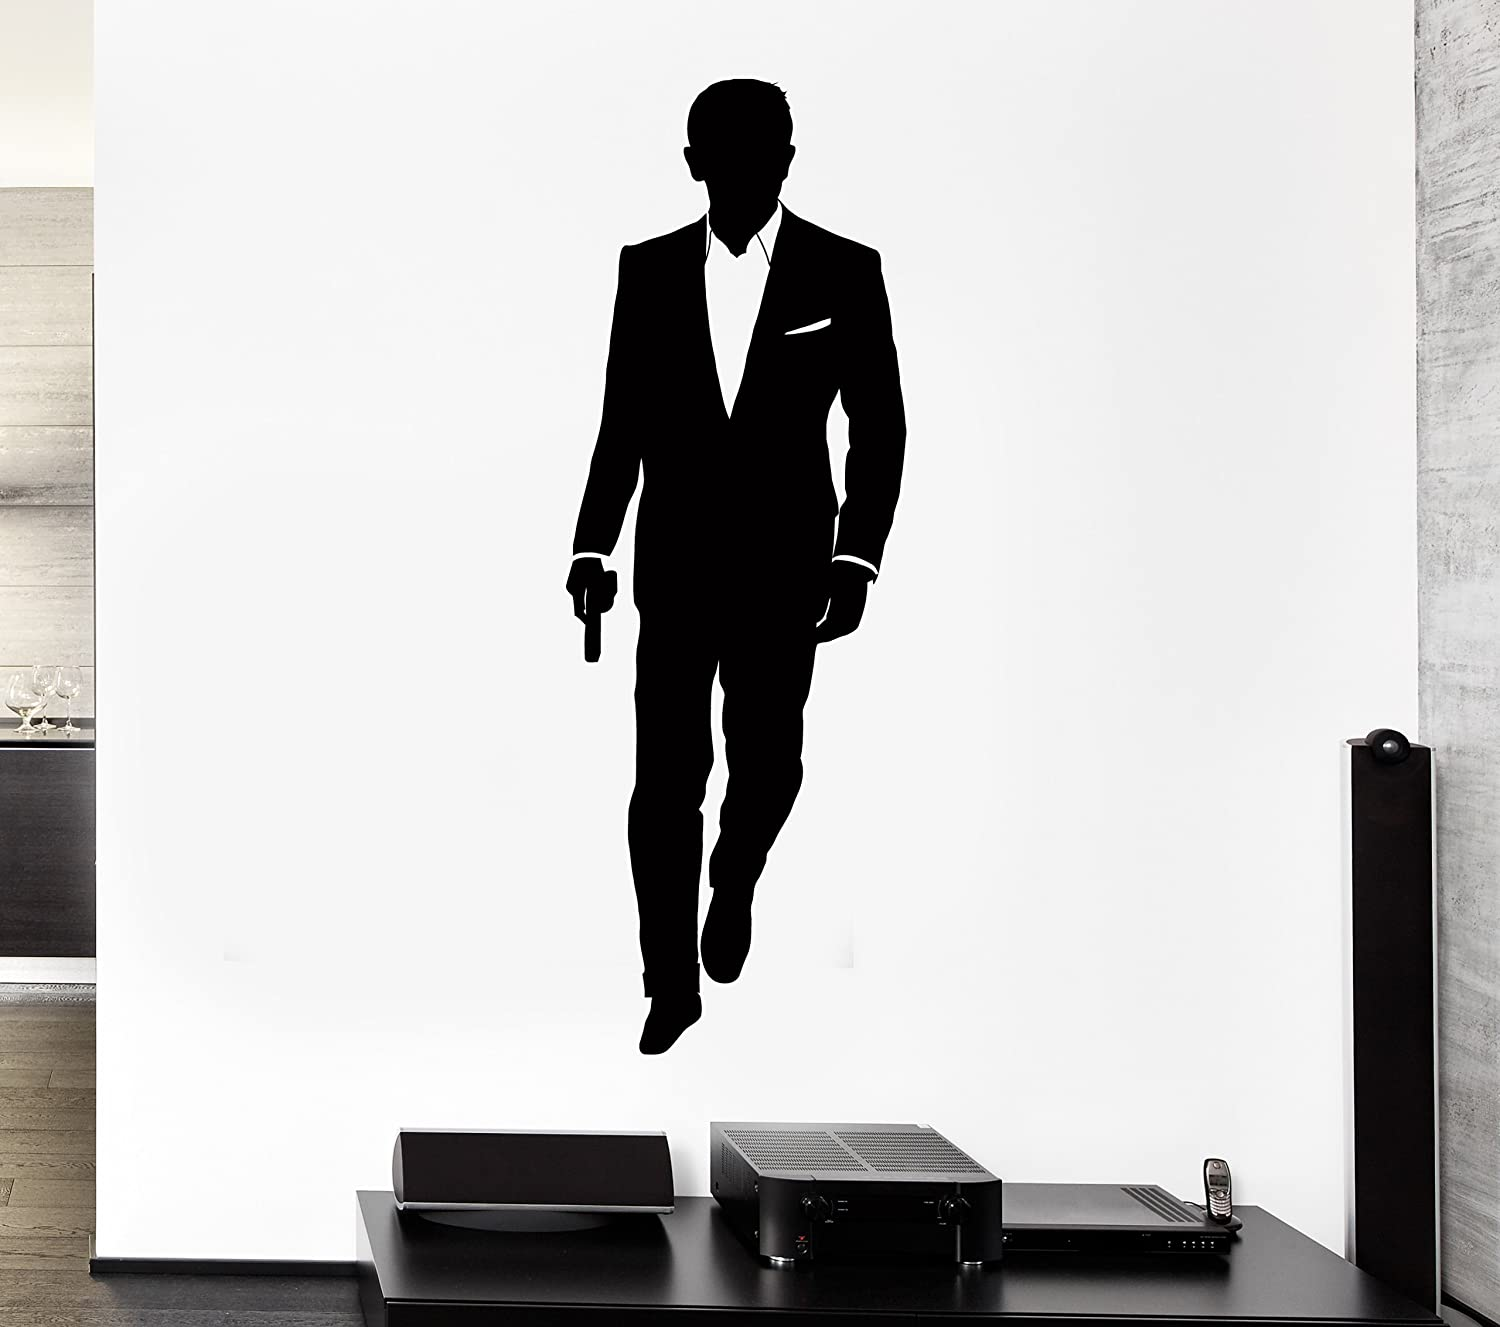 amazon com wall stickers vinyl decal james bond 007 secret agent amazon com wall stickers vinyl decal james bond 007 secret agent intelegent service z1033i m 12 5 in x 35 in black home kitchen